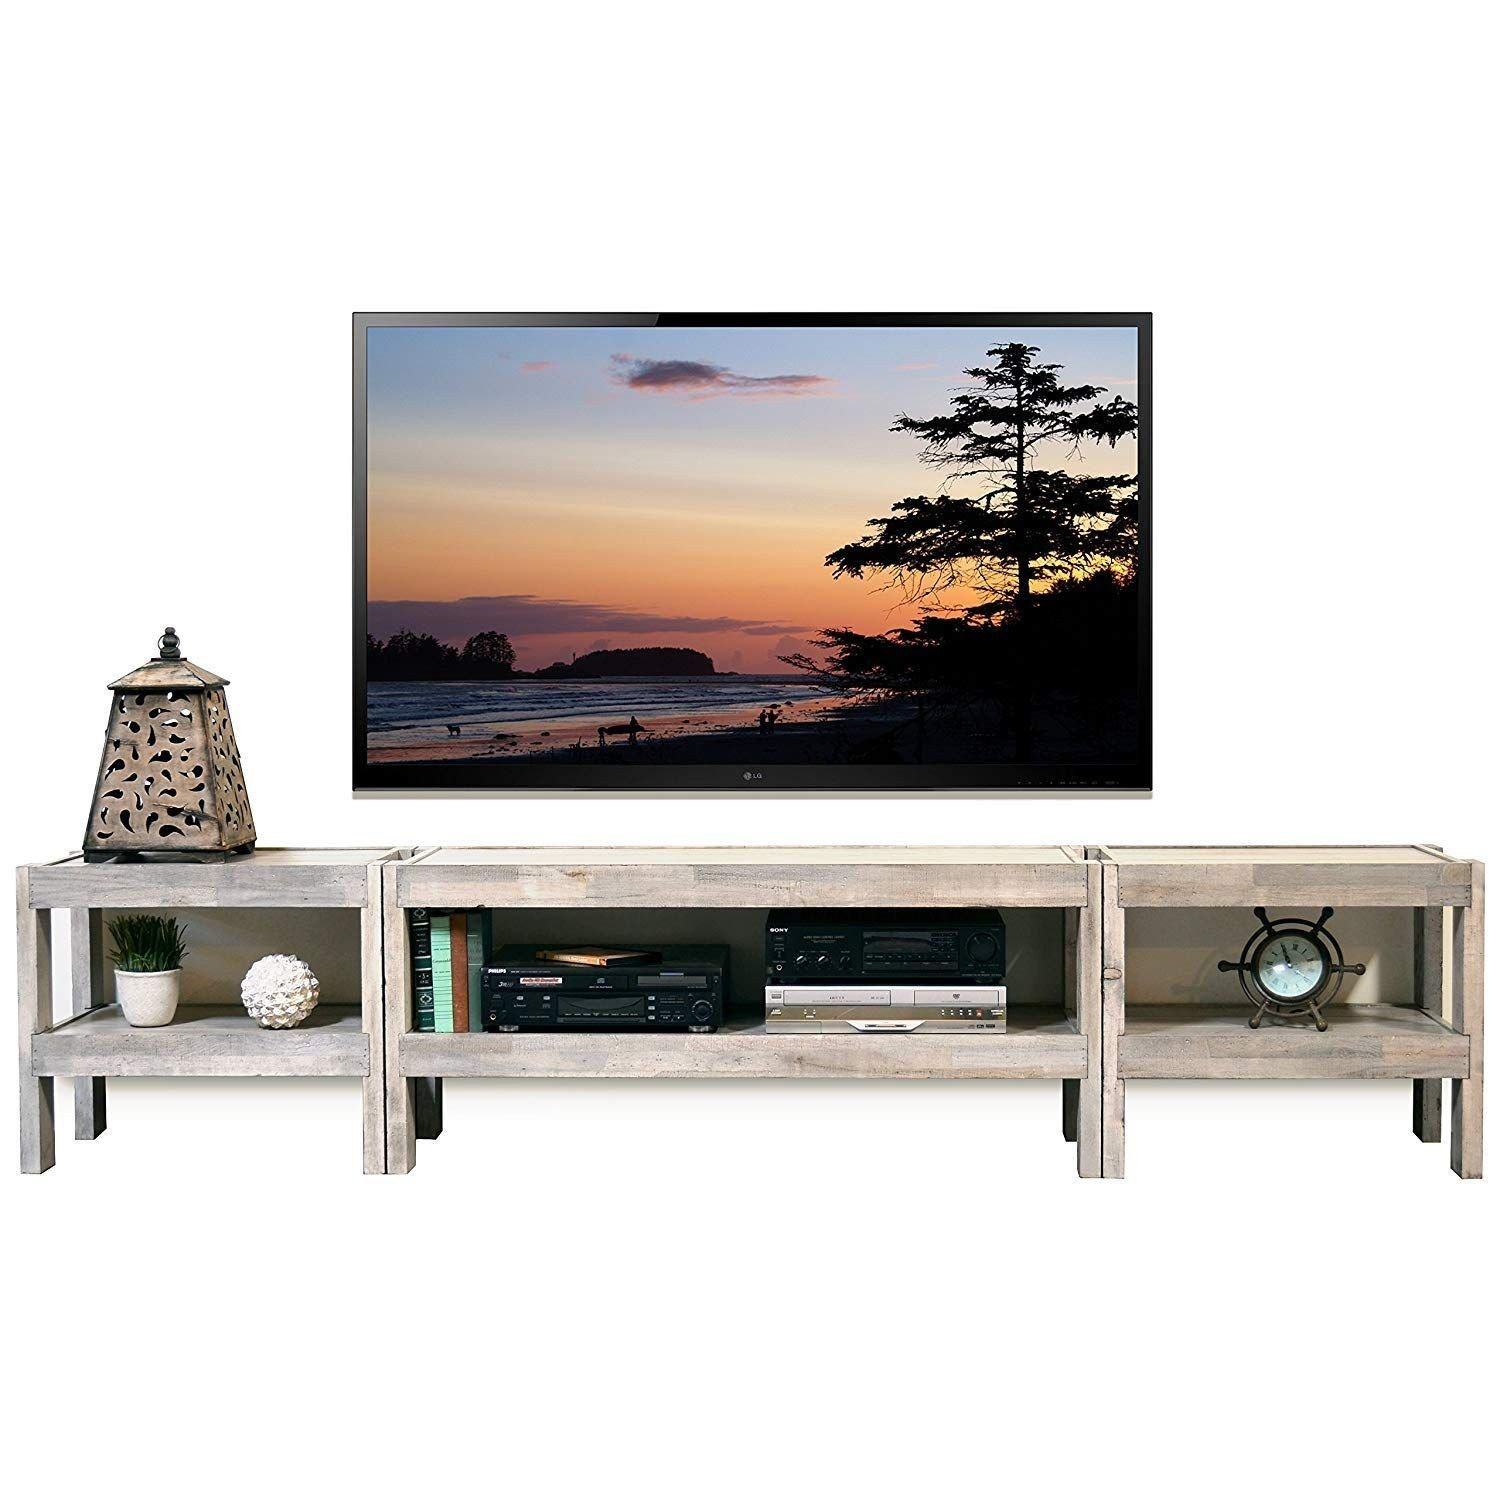 Good Size Tv for Bedroom Beautiful 100 Coastal Tv Stands and Beach Tv Stands